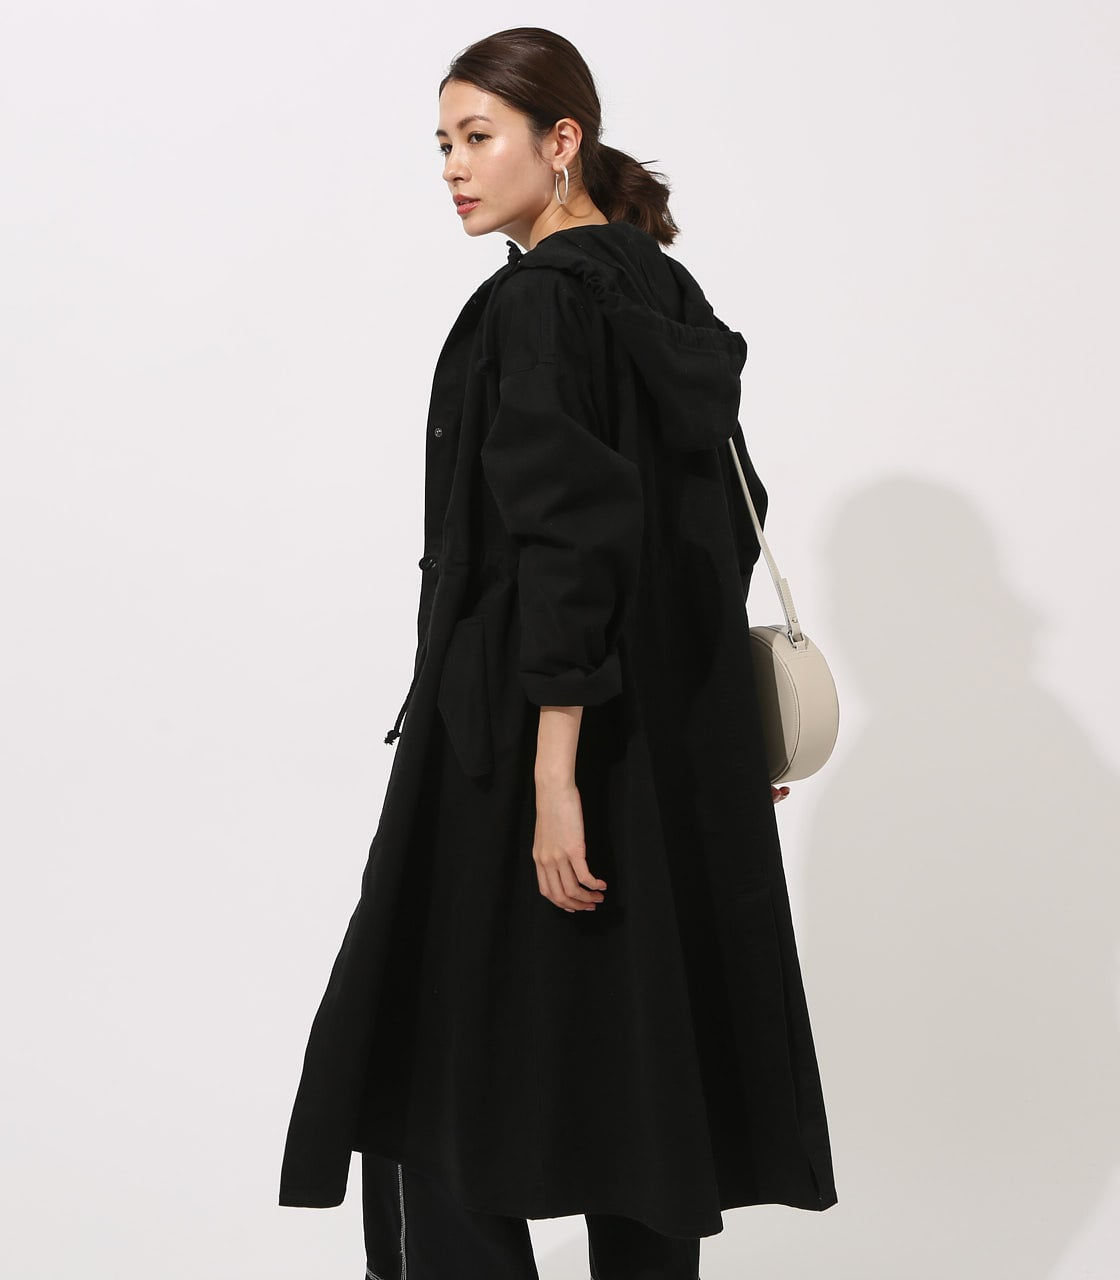 【AZUL BY MOUSSY】LOOSE MODS COAT 【MOOK49掲載 90044】 詳細画像 BLK 3